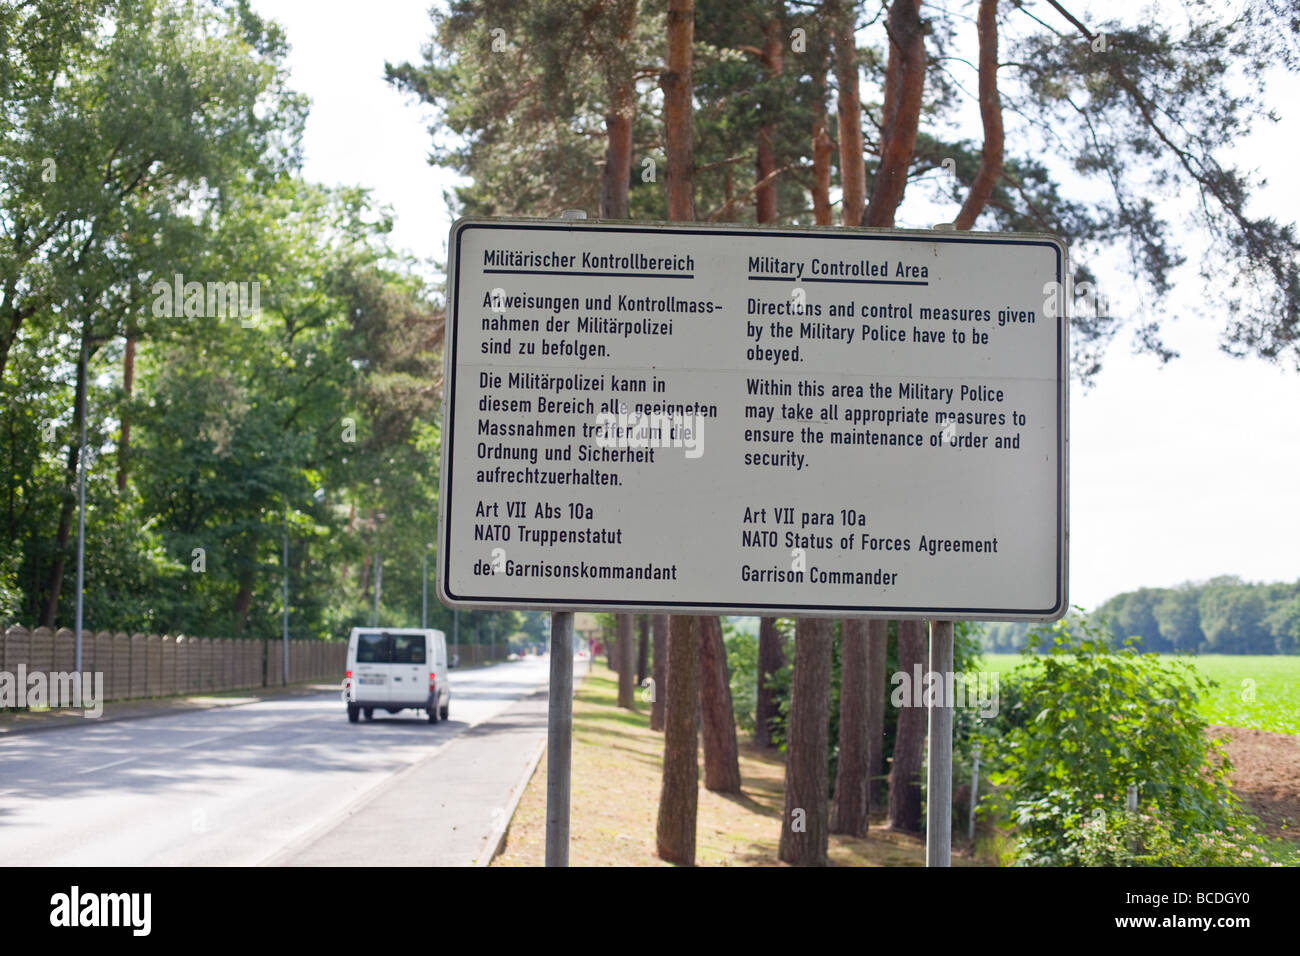 British military base signs in rheindahlen, monchengladbach, Germany - Stock Image